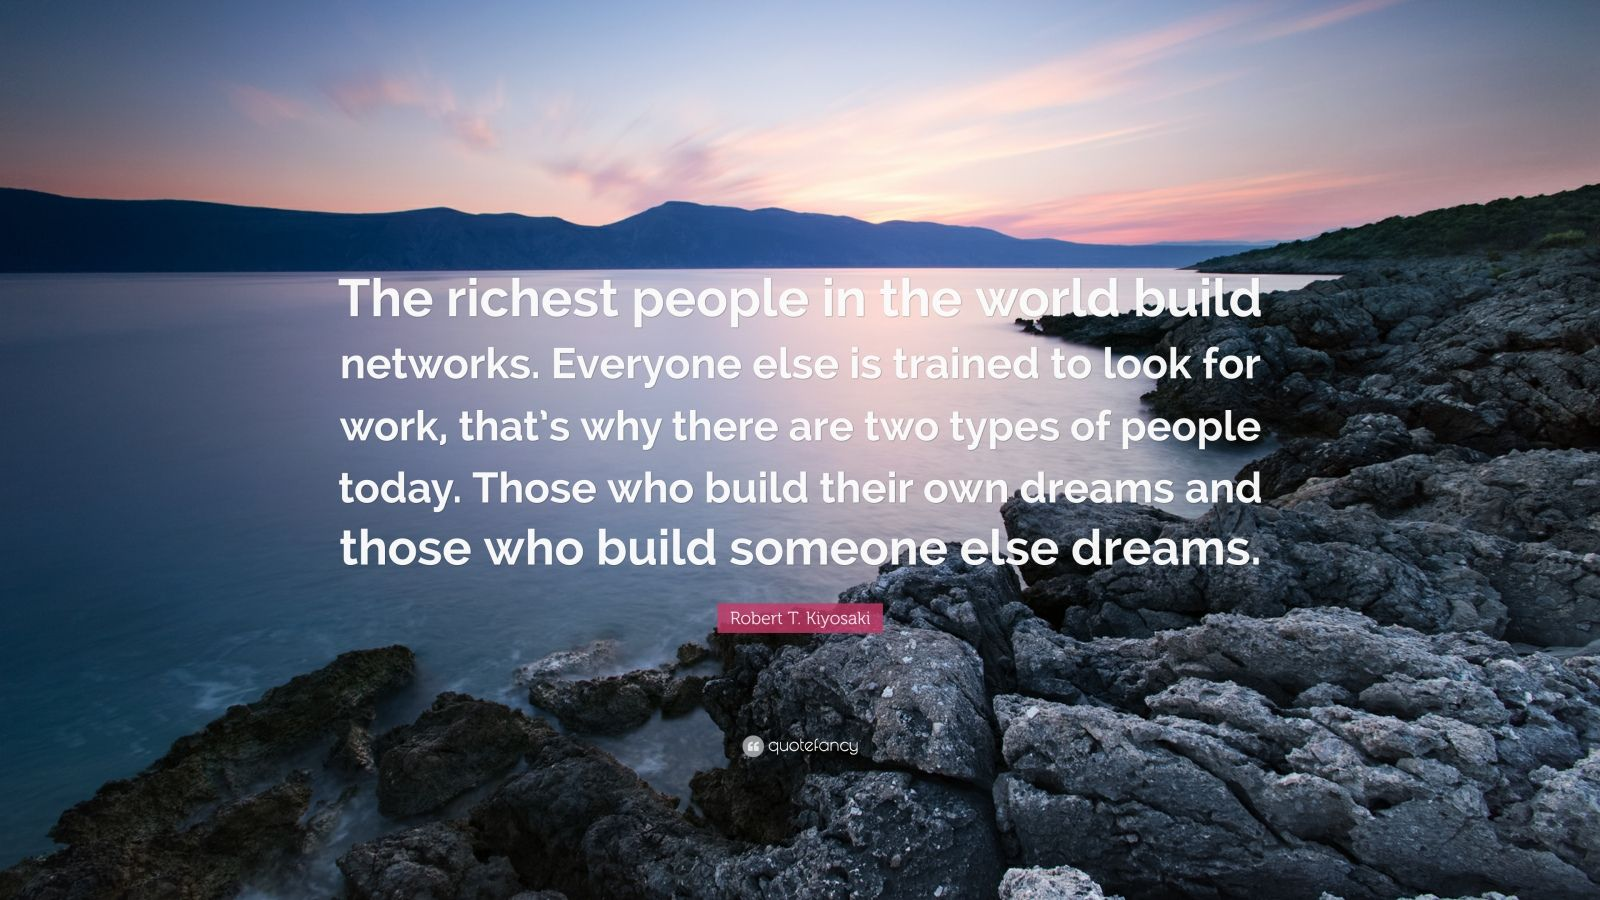 """Robert T. Kiyosaki Quote: """"The richest people in the world build networks. Everyone else is trained to look for work, that's why there are two types of people today. Those who build their own dreams and those who build someone else dreams."""""""